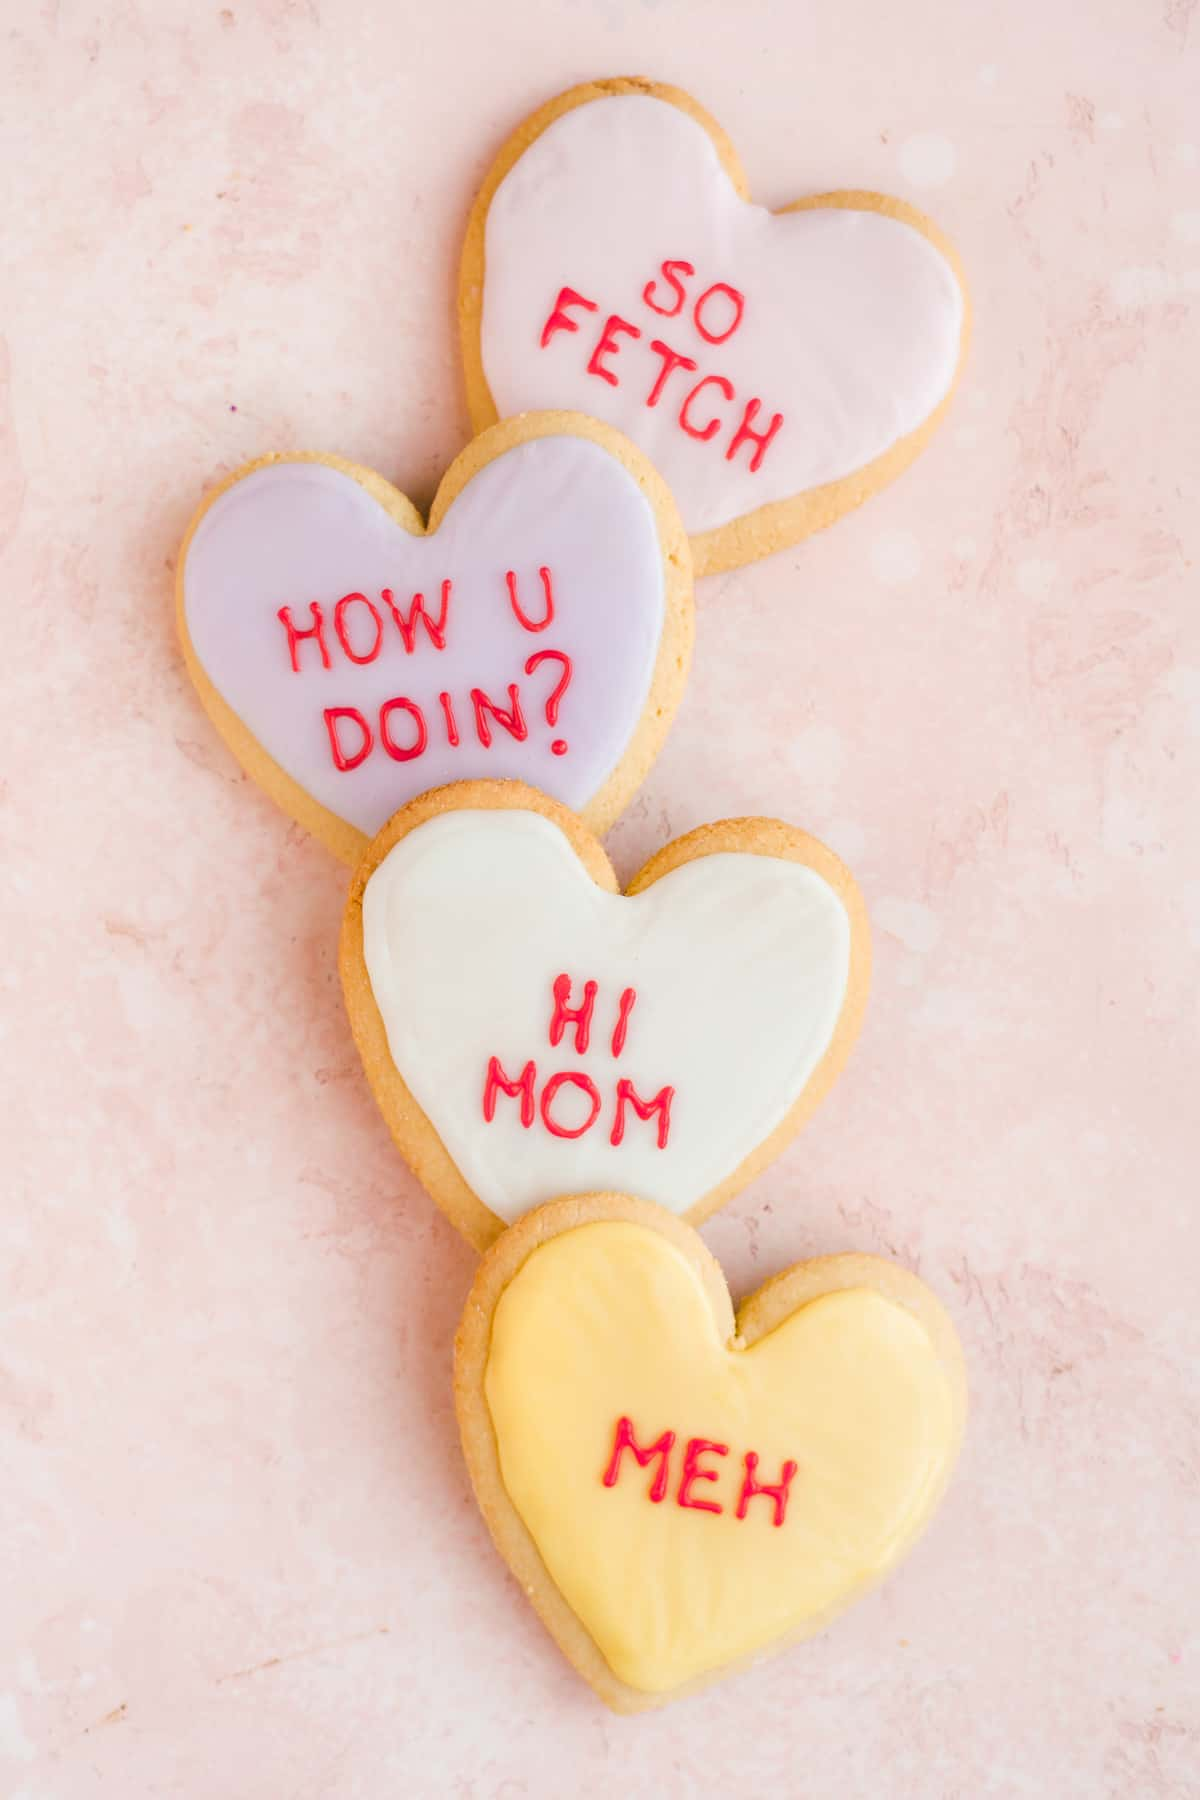 Four heart shaped sugar cookies with pastel icing and red writing in a line on a pink surface.